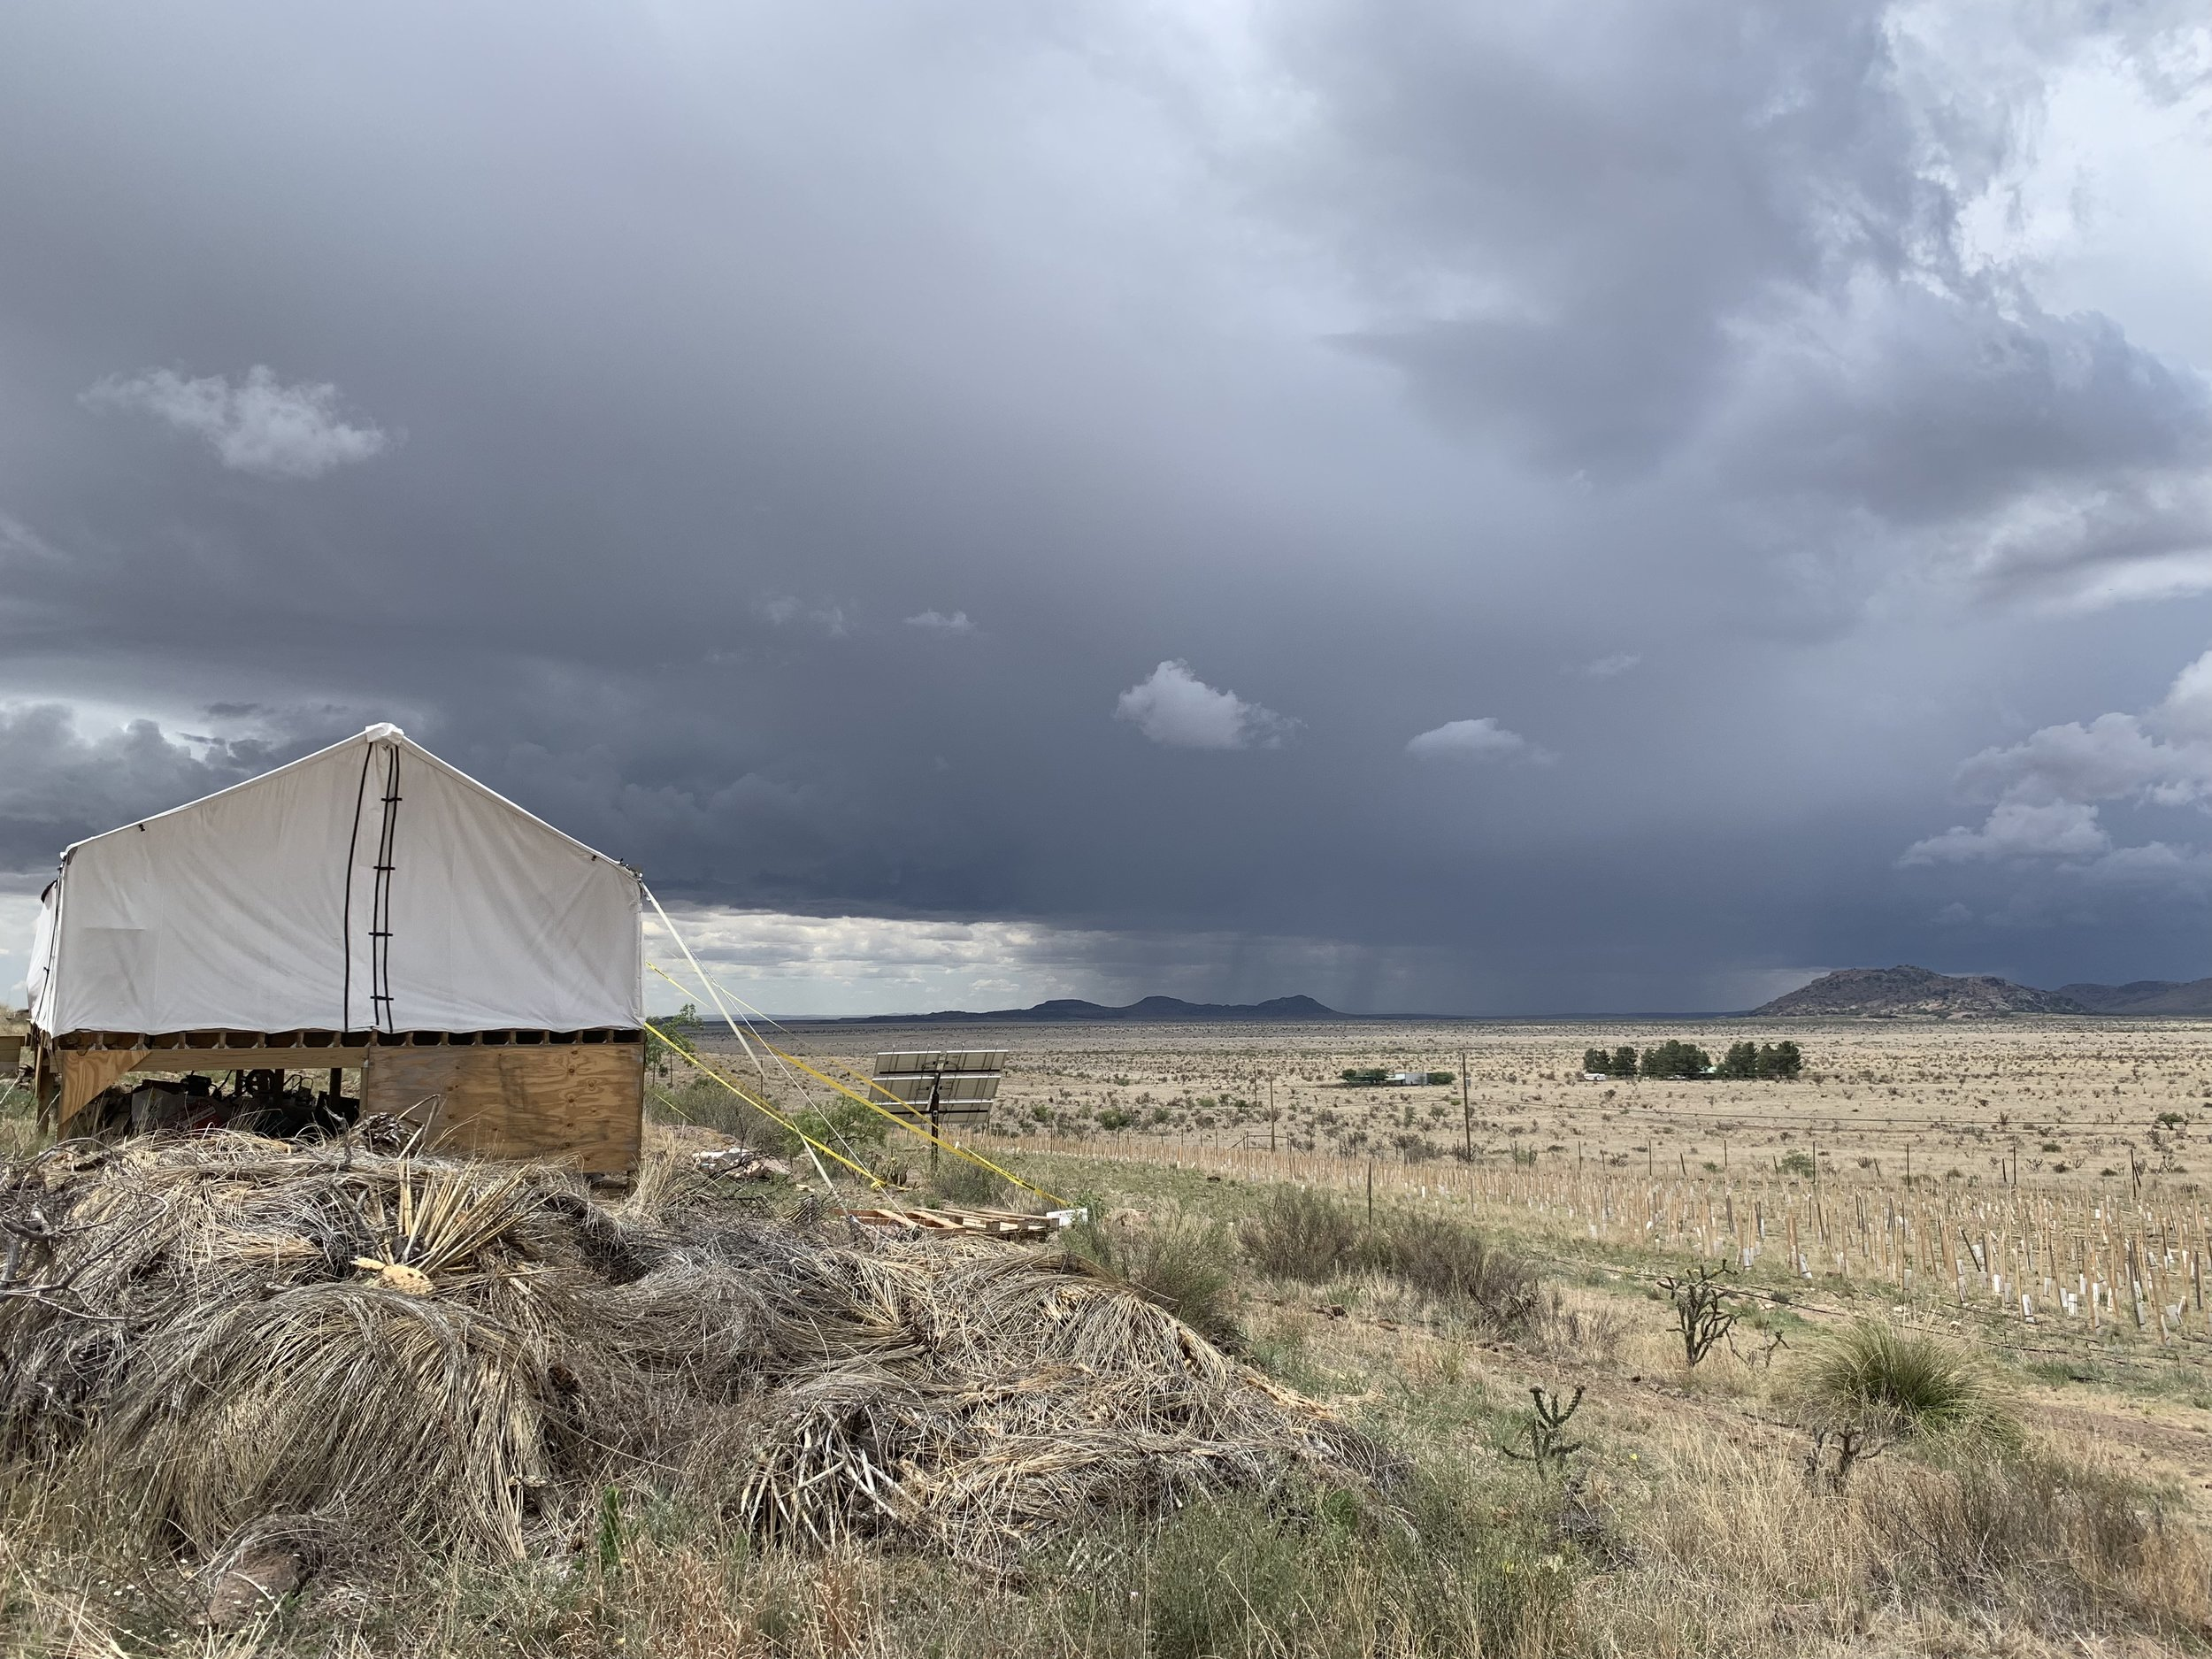 We watched several of the big storms approach from a long way off.